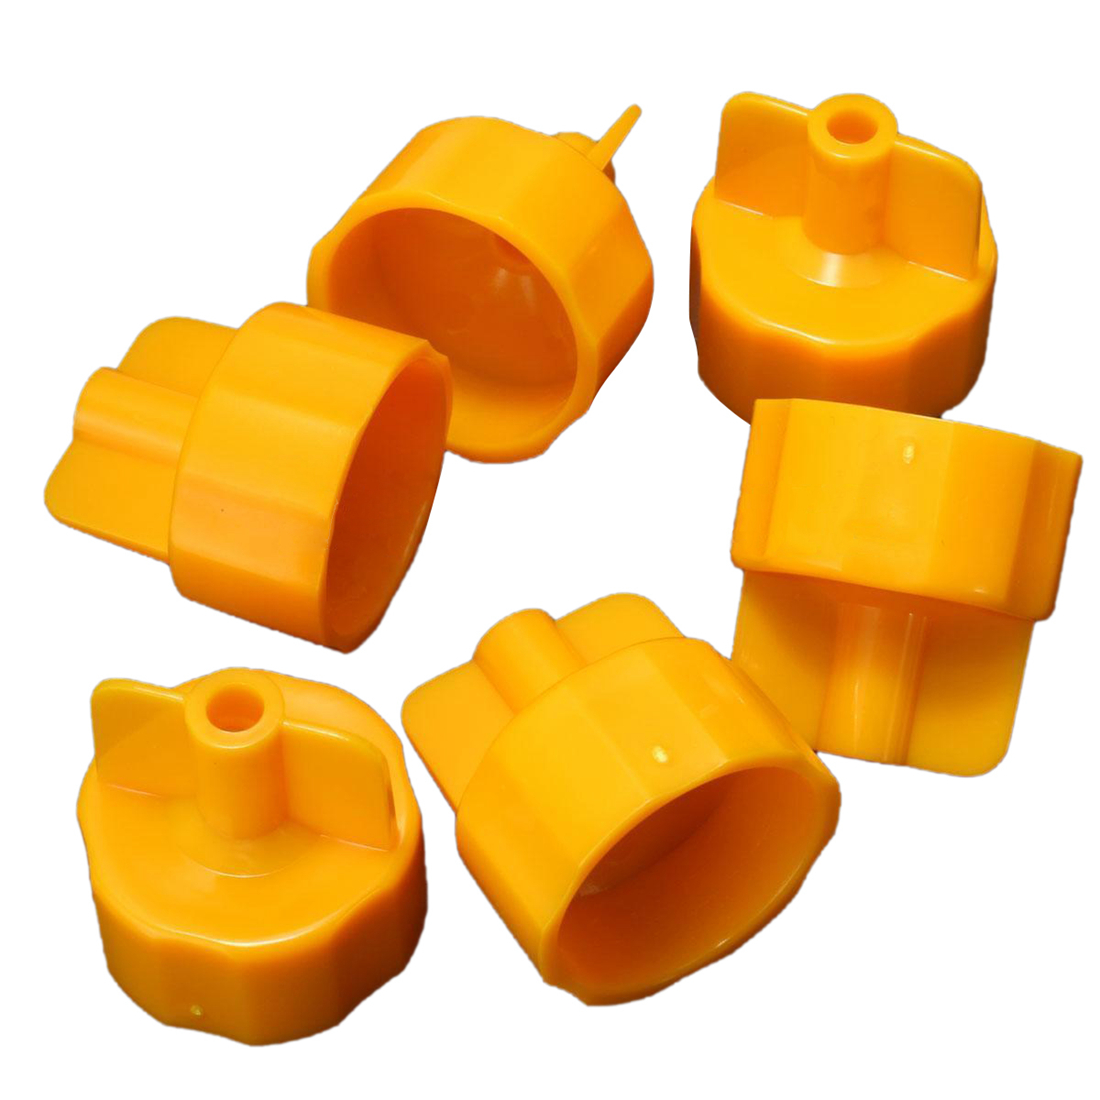 100x Tile Positioning Tool Base Cap Flooring Horizontal System Construction Yellow 100x tile positioning tool base cap flooring horizontal system construction yellow